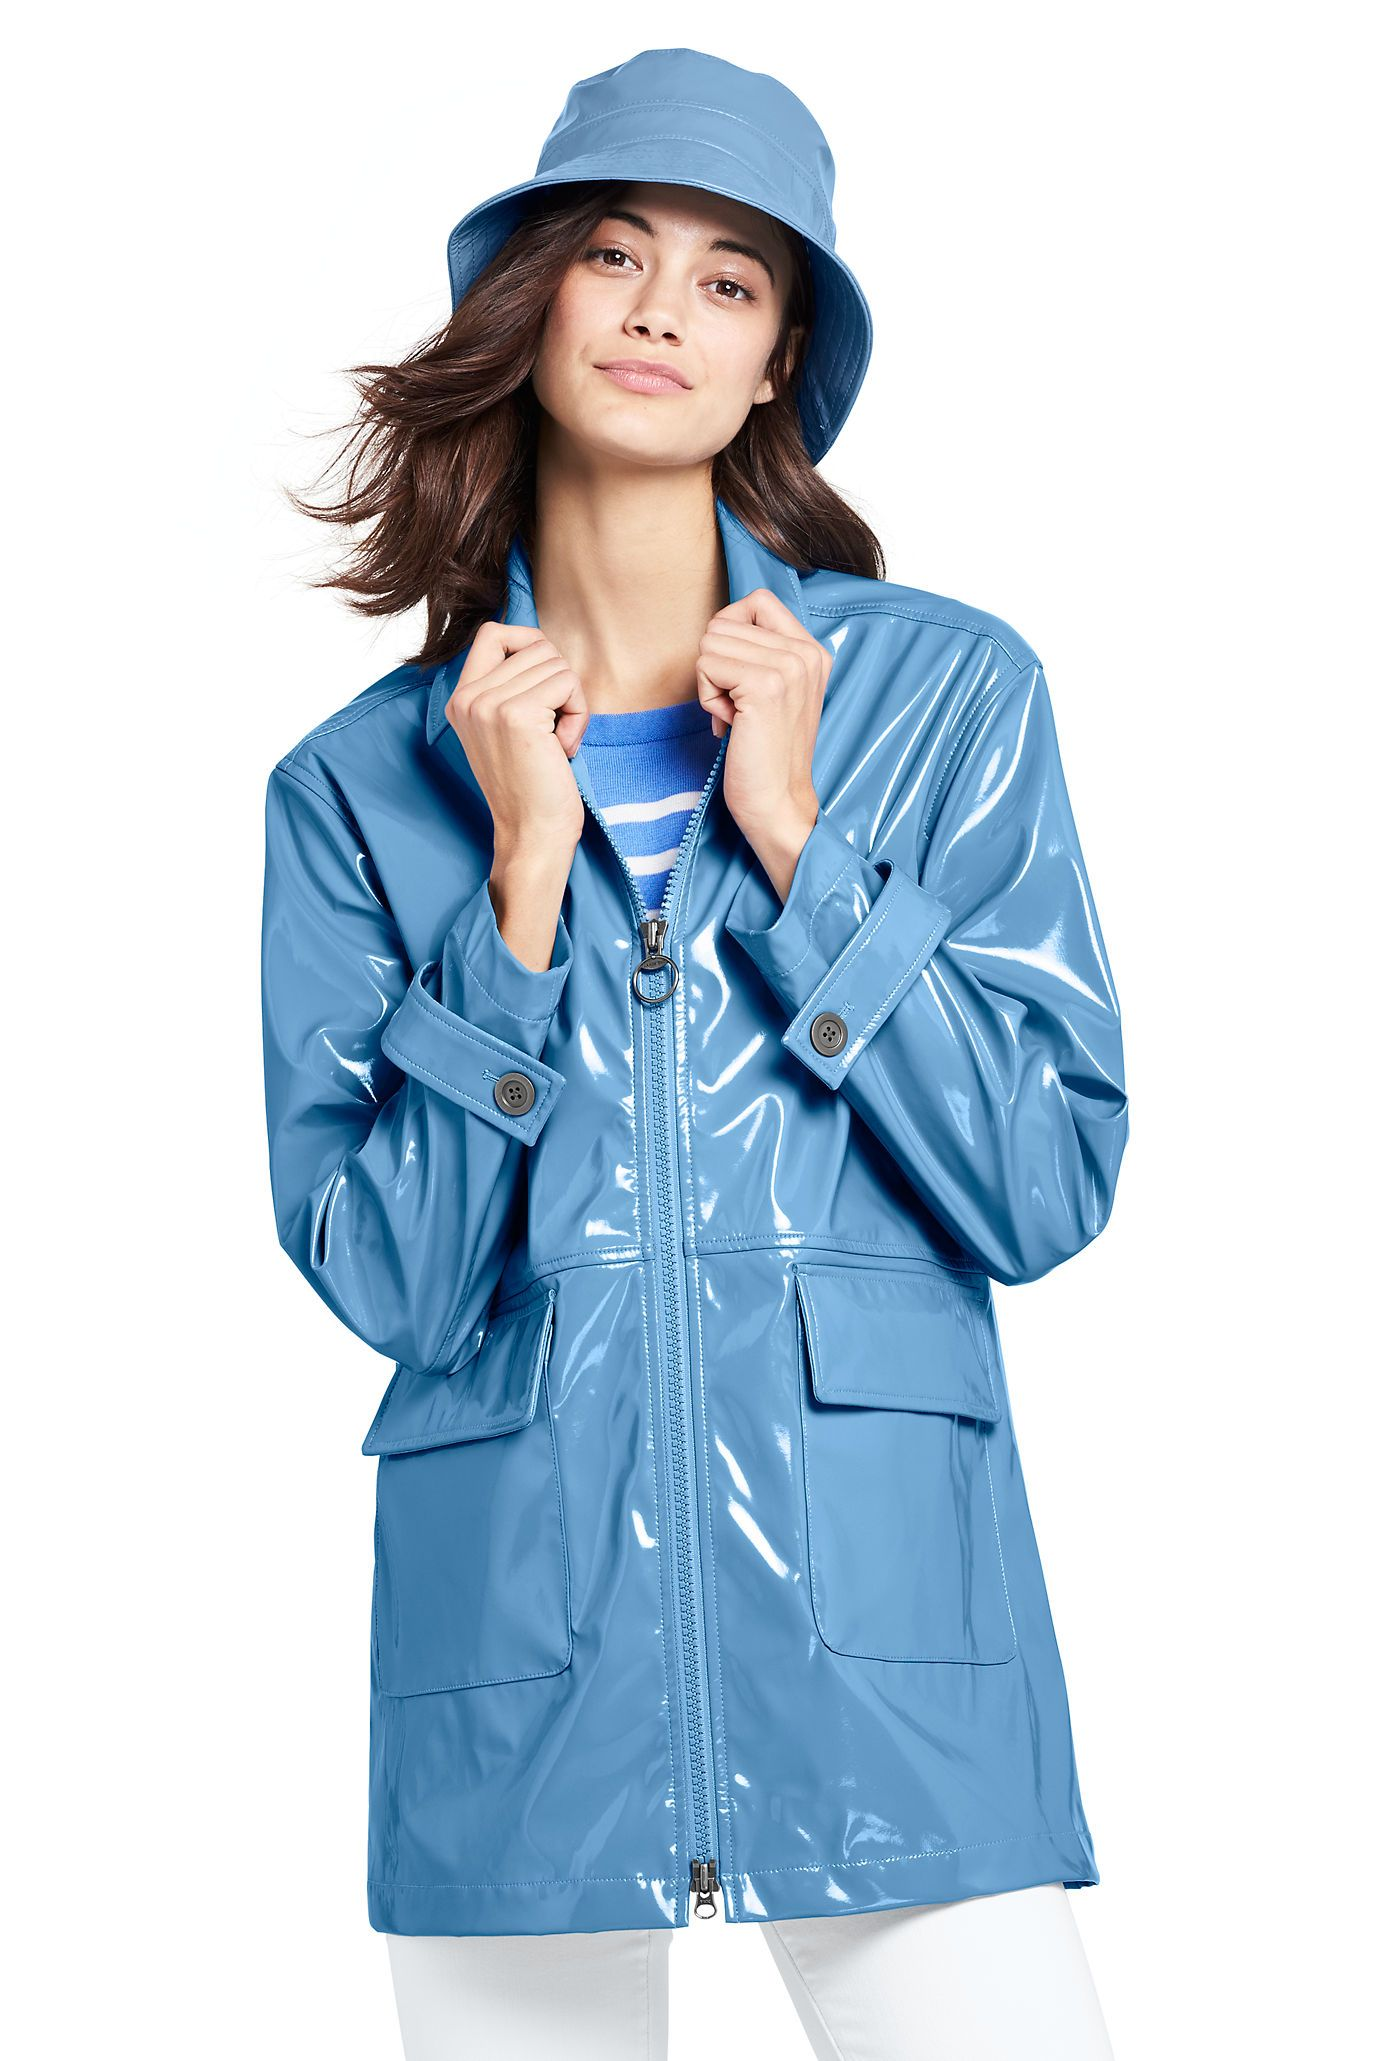 Watch 13 Raincoats Thatll Make You Feel Pretty Even When the Weather Stinks video